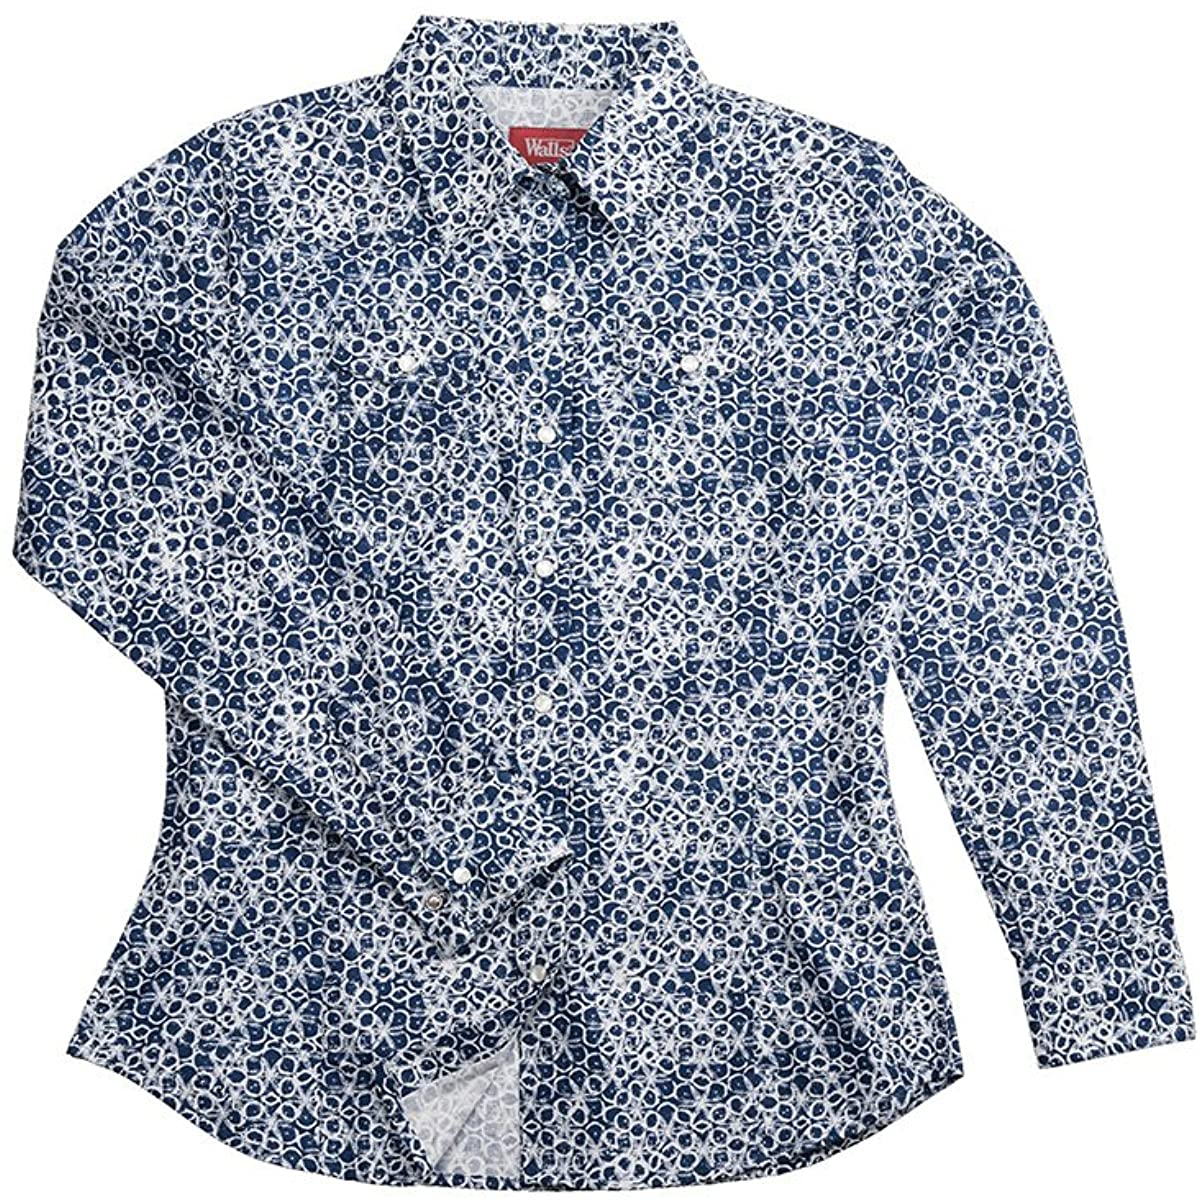 Walls - Womens ZLF018 Wild Blue Floral L/S Snap Shirt, Size: 2X-Large, Color: Print